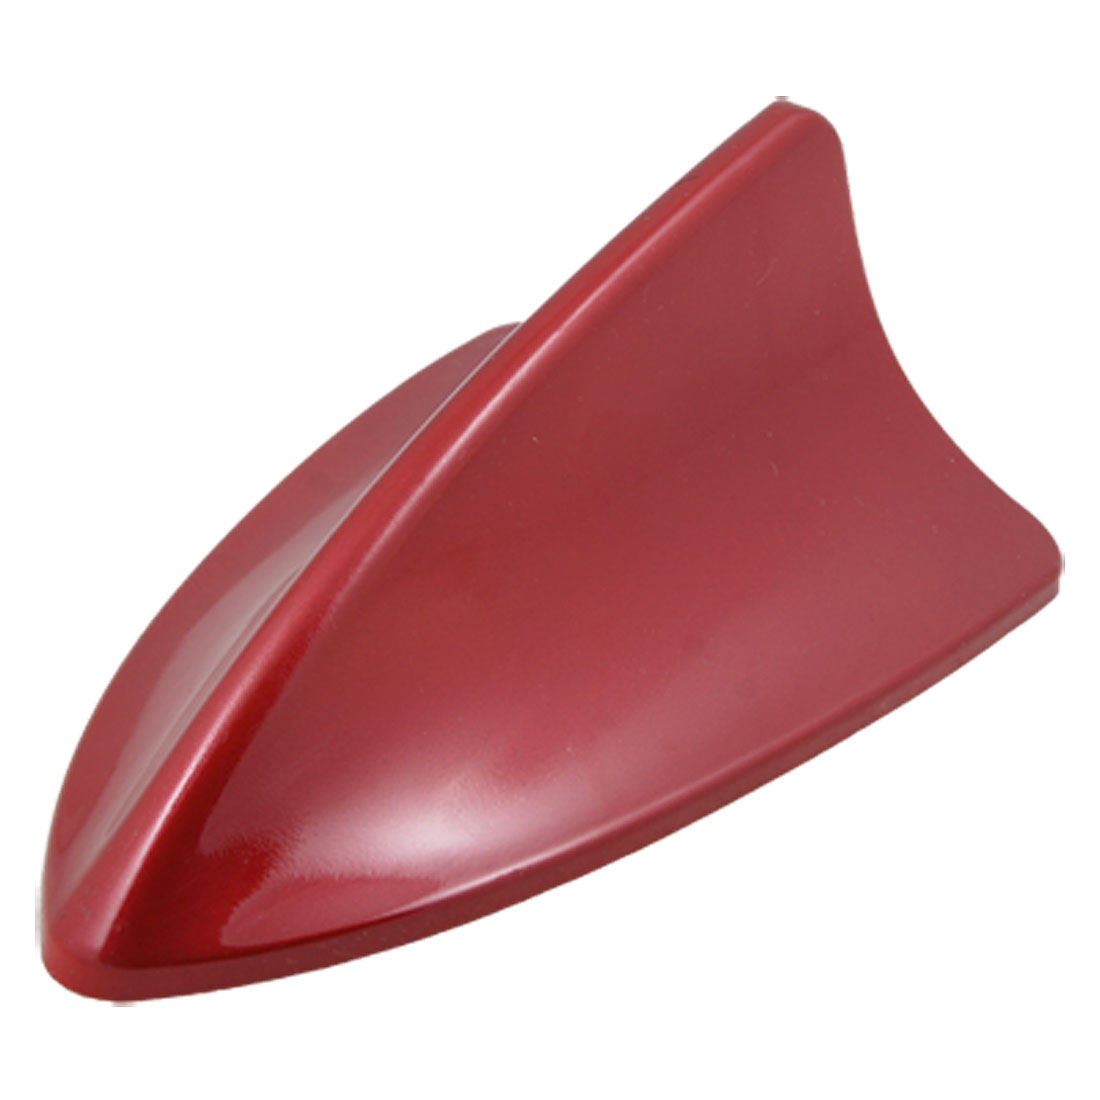 Auto Car Roof Old Red Plastic Shark Fin Shaped Ornament Antenna